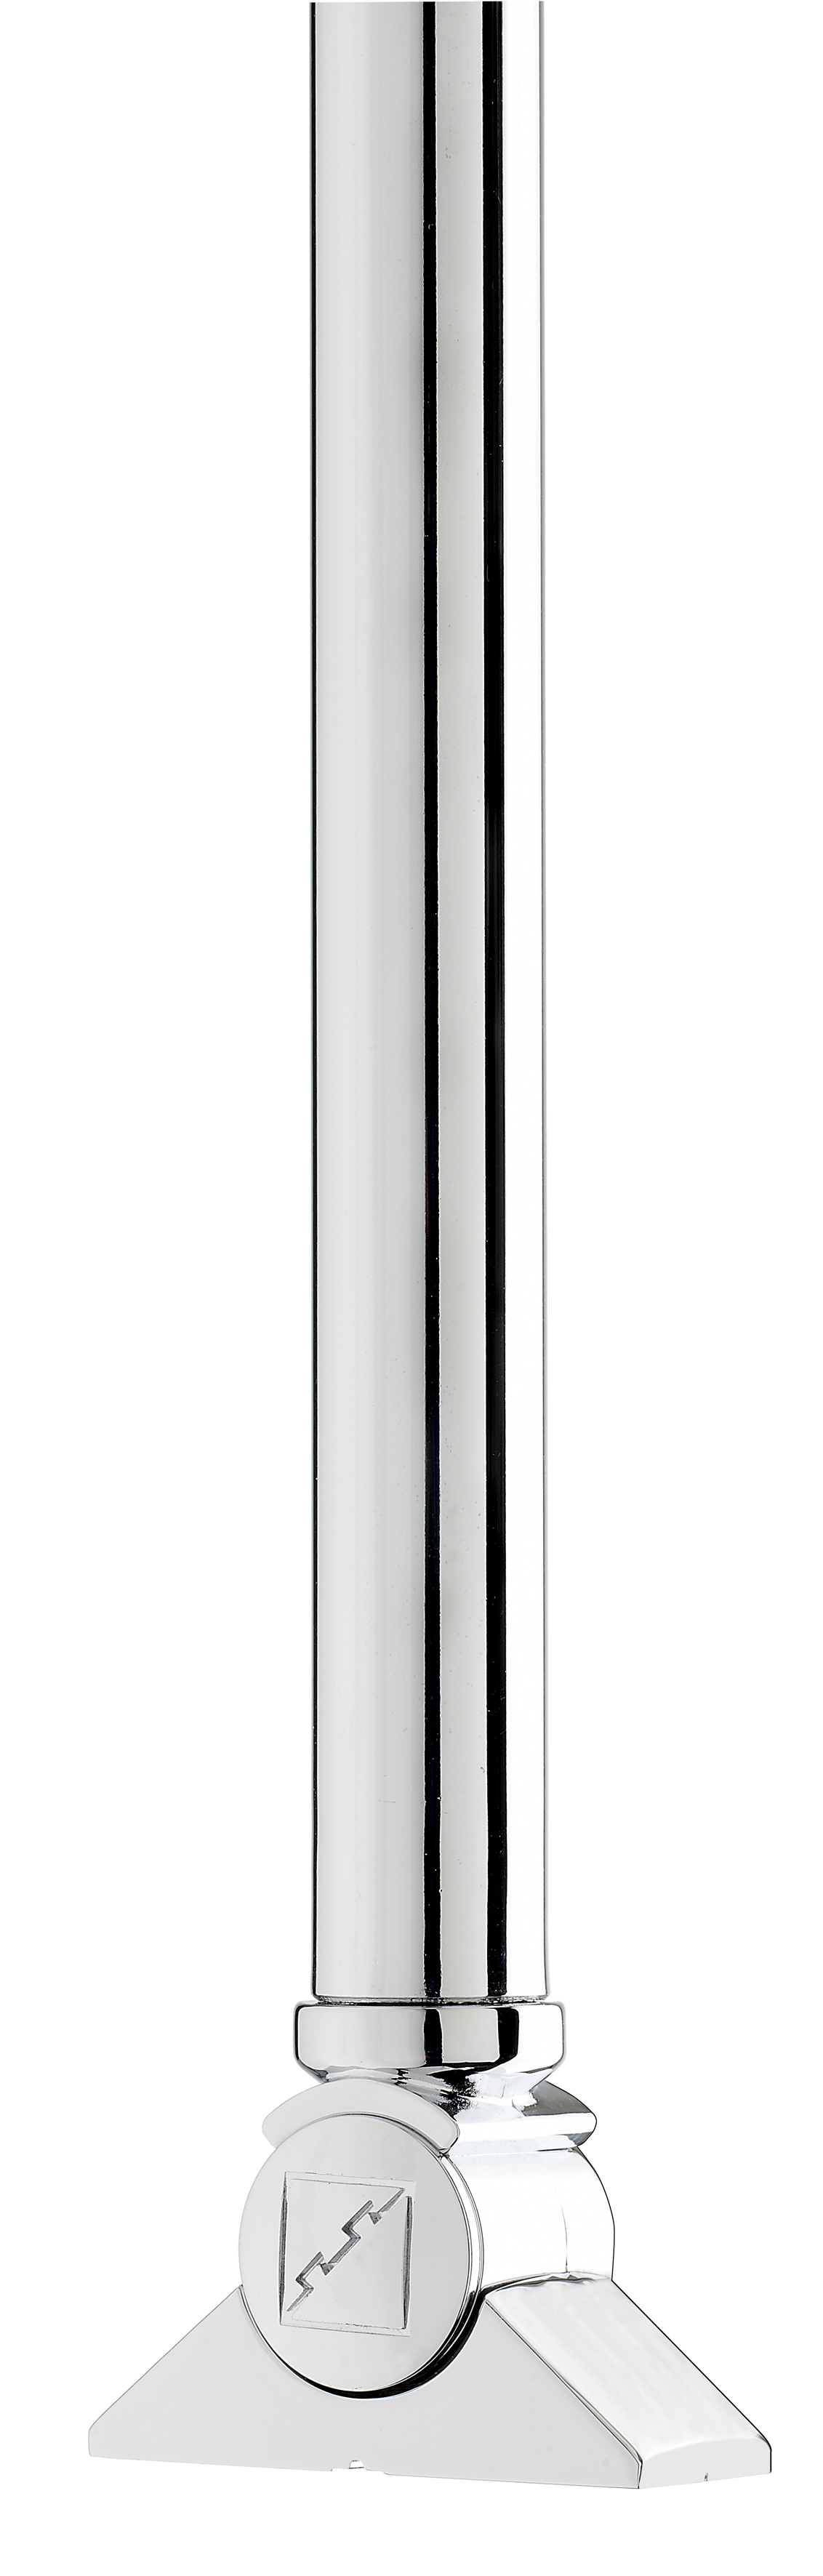 1 Fusion Mk2 Landing Baluster Chrome Finish 760